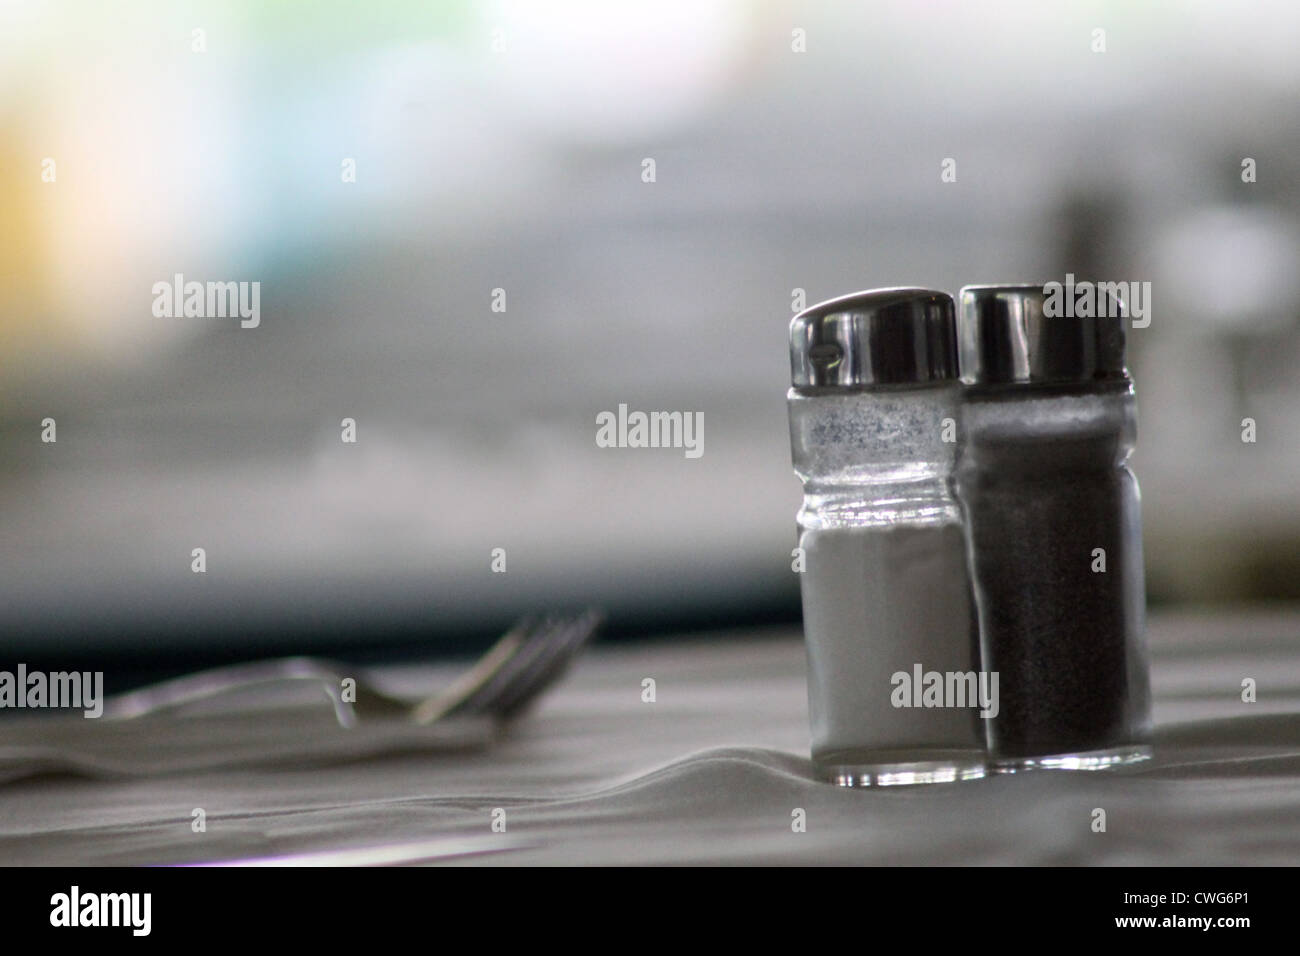 Salt and pepper shakers on table with fork and copy space, food and drink concept. - Stock Image